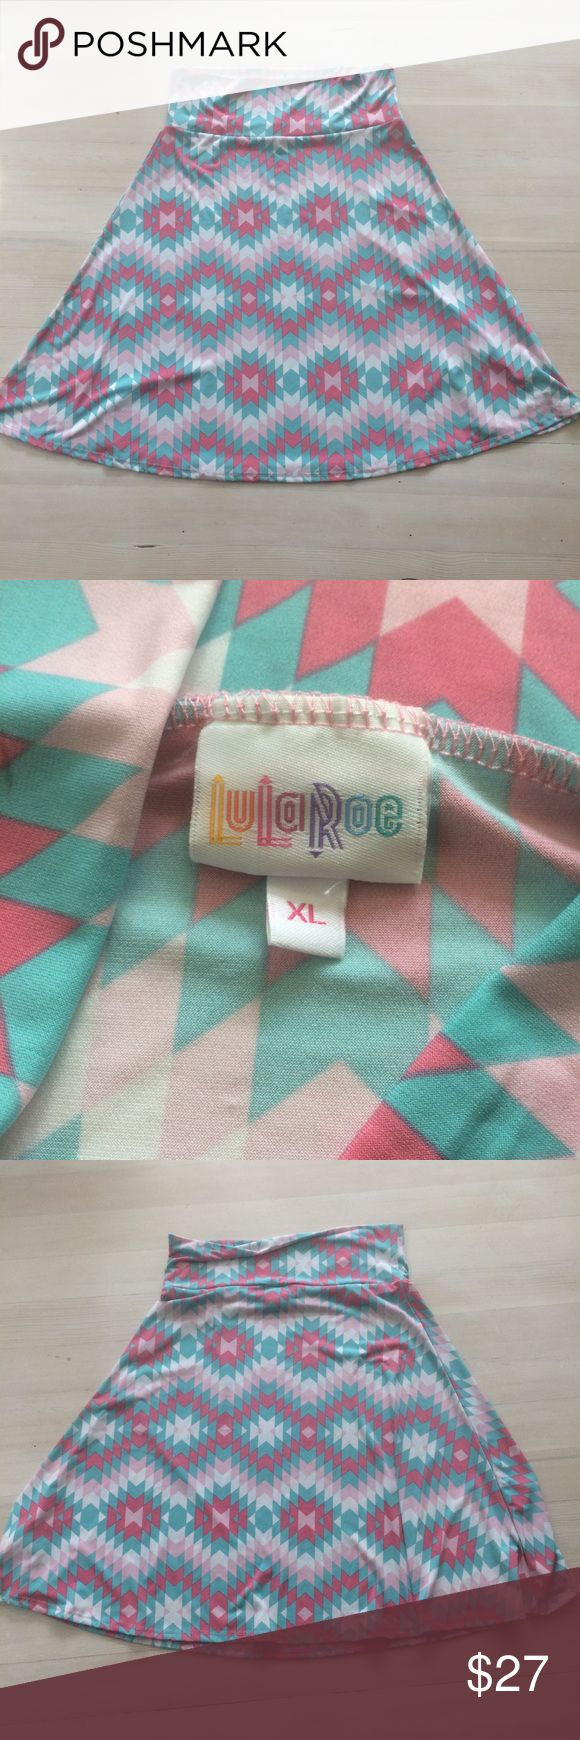 Lularoe sz XL Pastel Geometric Stretchy Skirt Lularoe women's skirt. Size extra large. Pastel Geometric pattern. LuLaRoe Skirts A-Line or Full